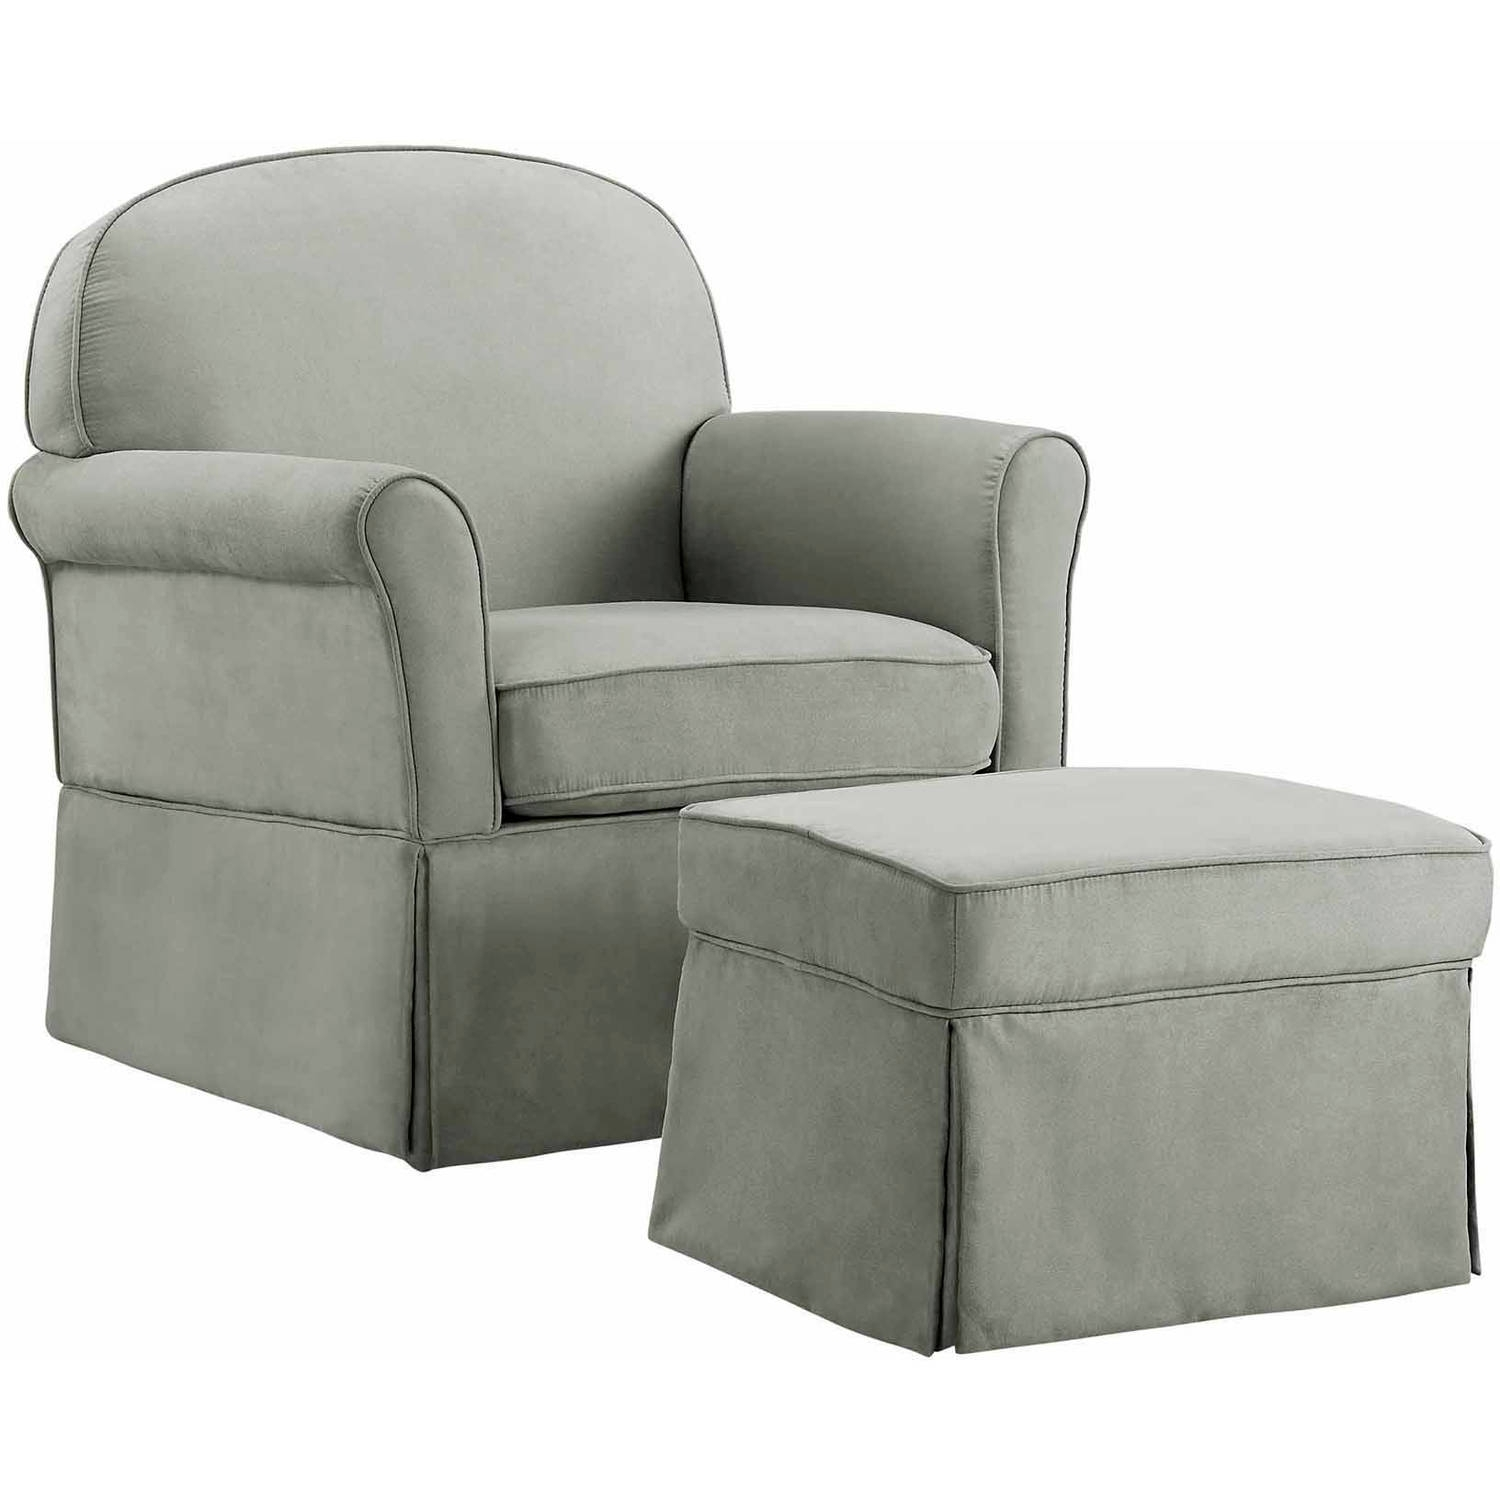 Baby Relax Evan Swivel Glider And Ottoman Gray – Walmart Throughout Gliders With Ottoman (View 2 of 10)